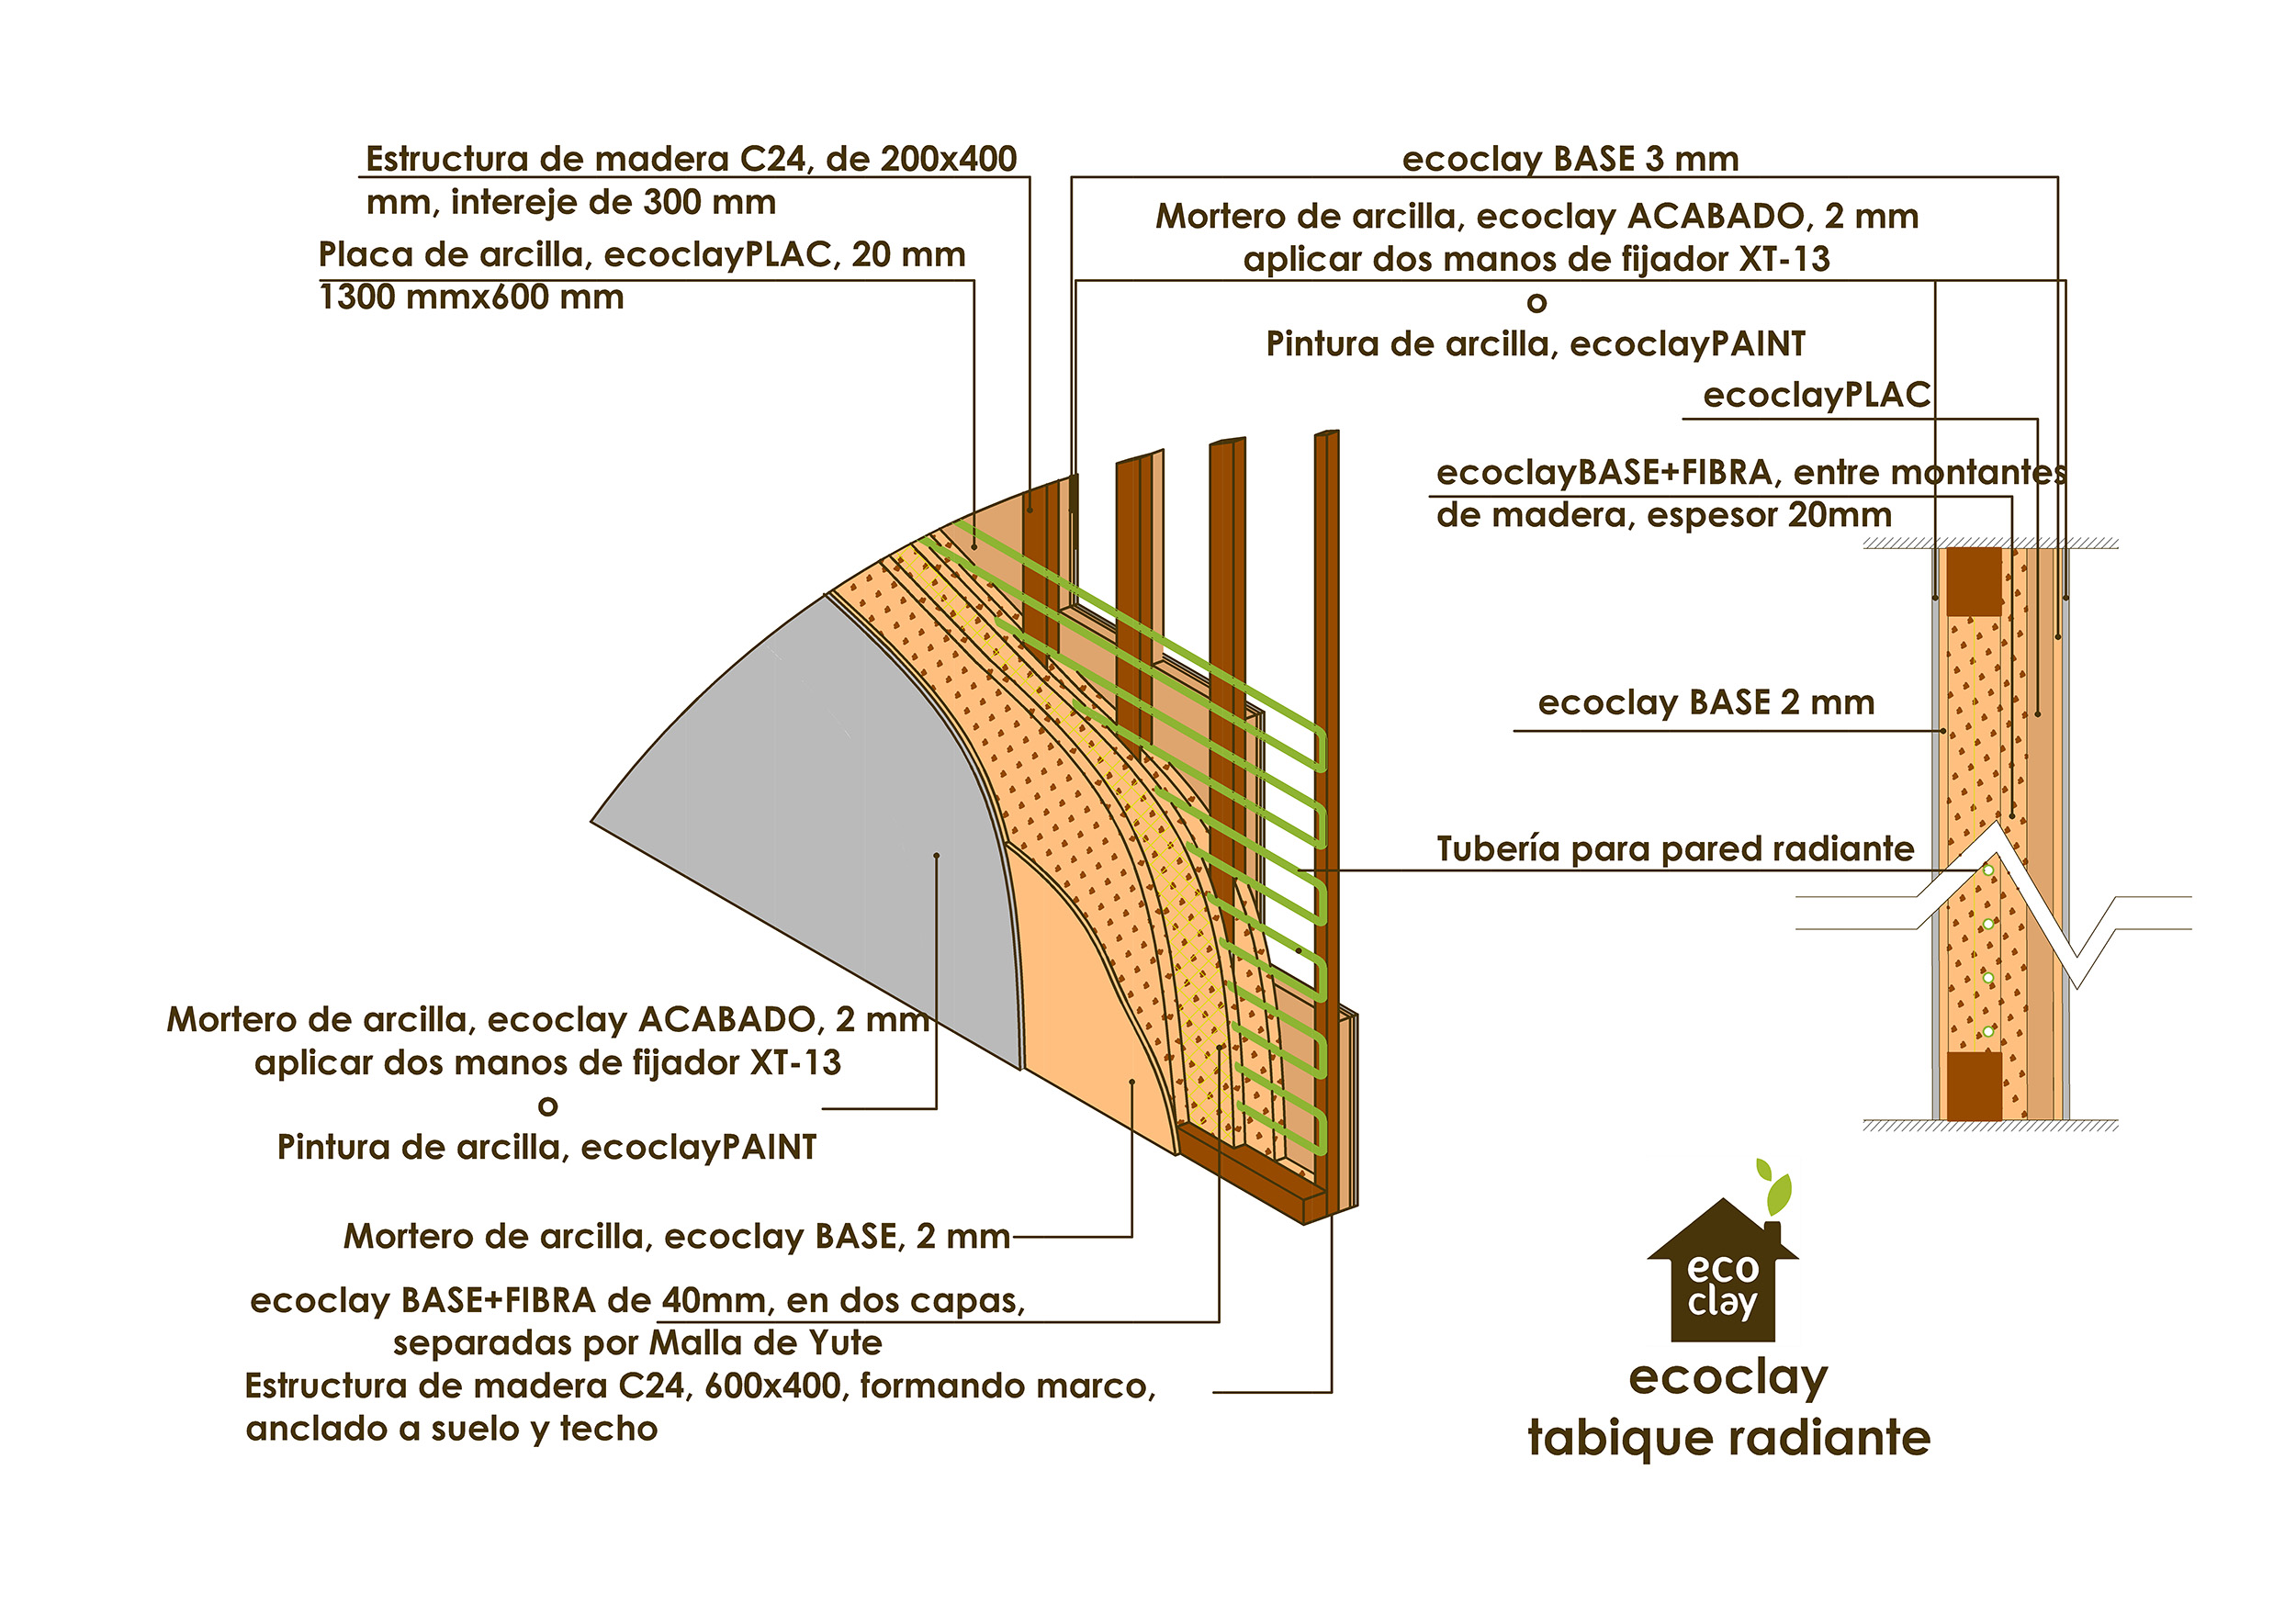 ecoclay PLAC, tabique radiante